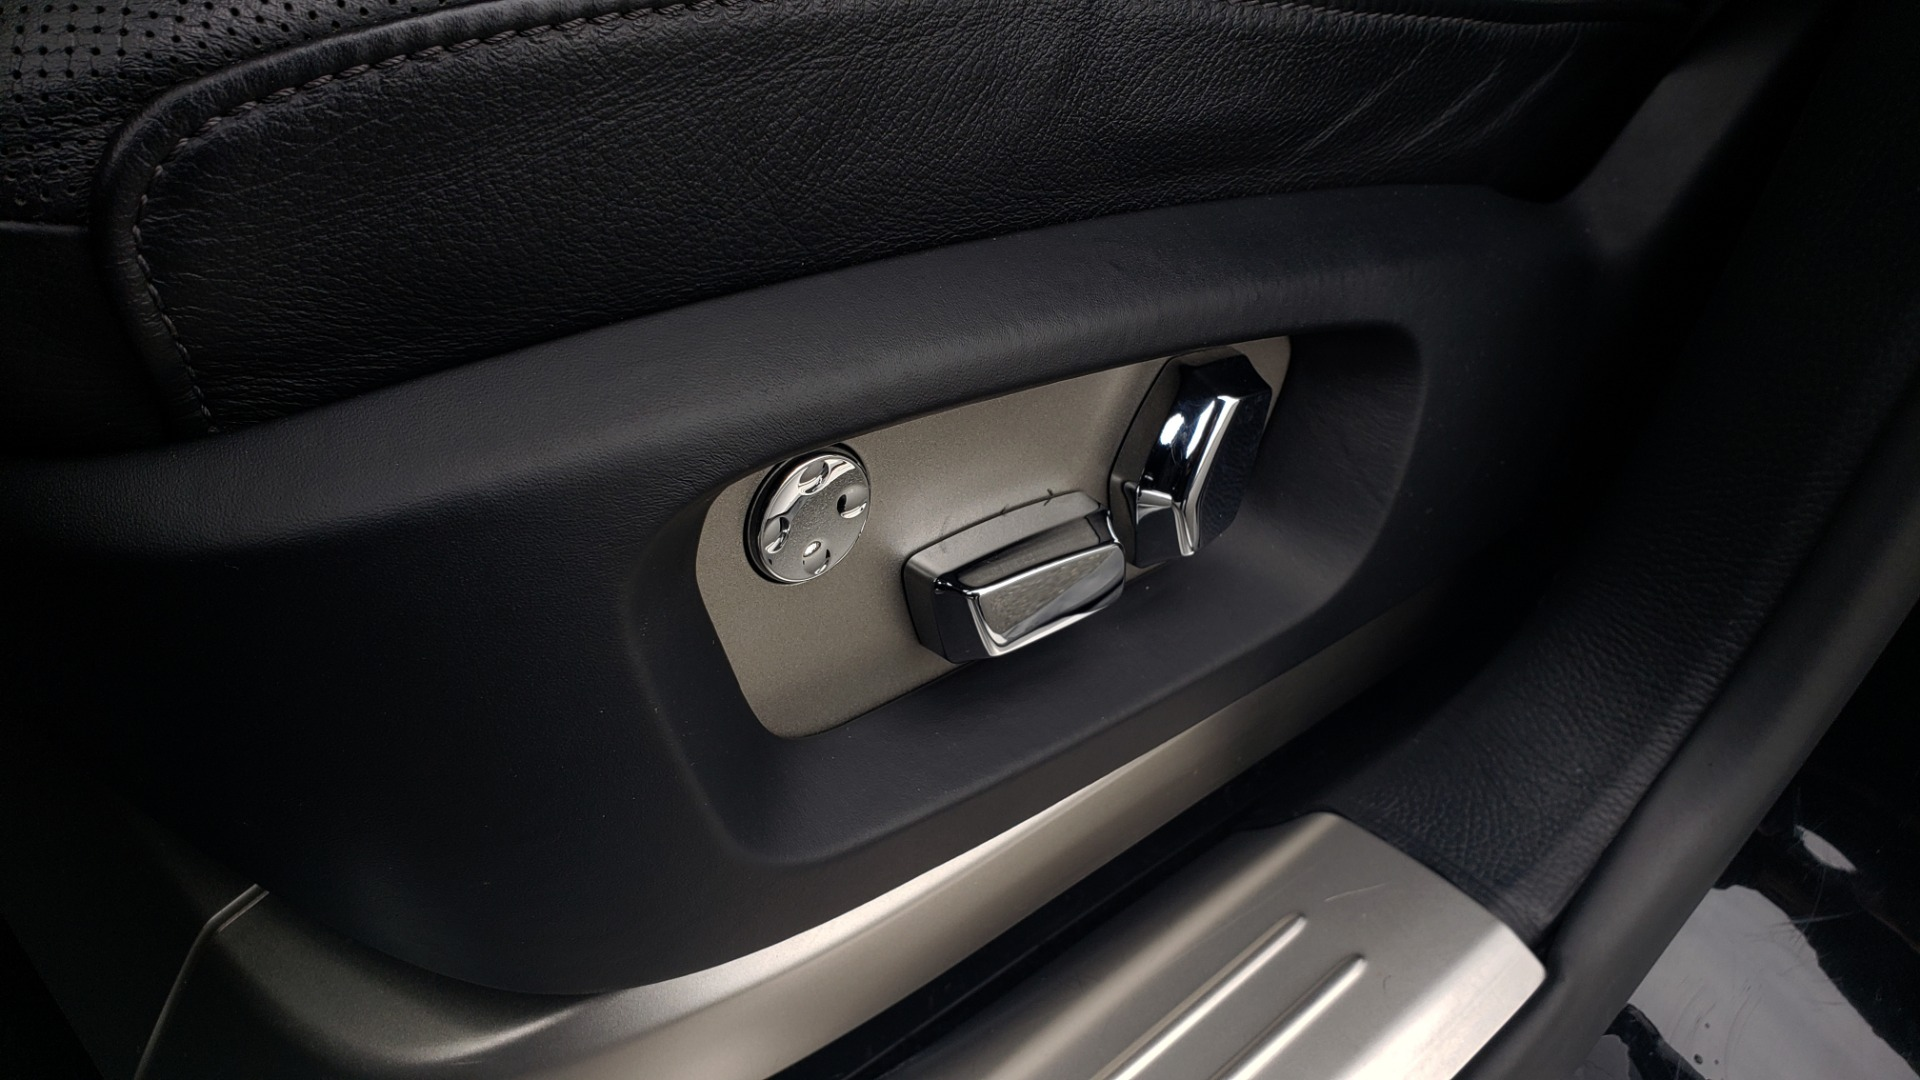 Used 2010 Rolls-Royce GHOST 6.6L TURBO V12 (563HP) / NAV / SUNROOF / SUICIDE DOORS for sale $89,000 at Formula Imports in Charlotte NC 28227 24